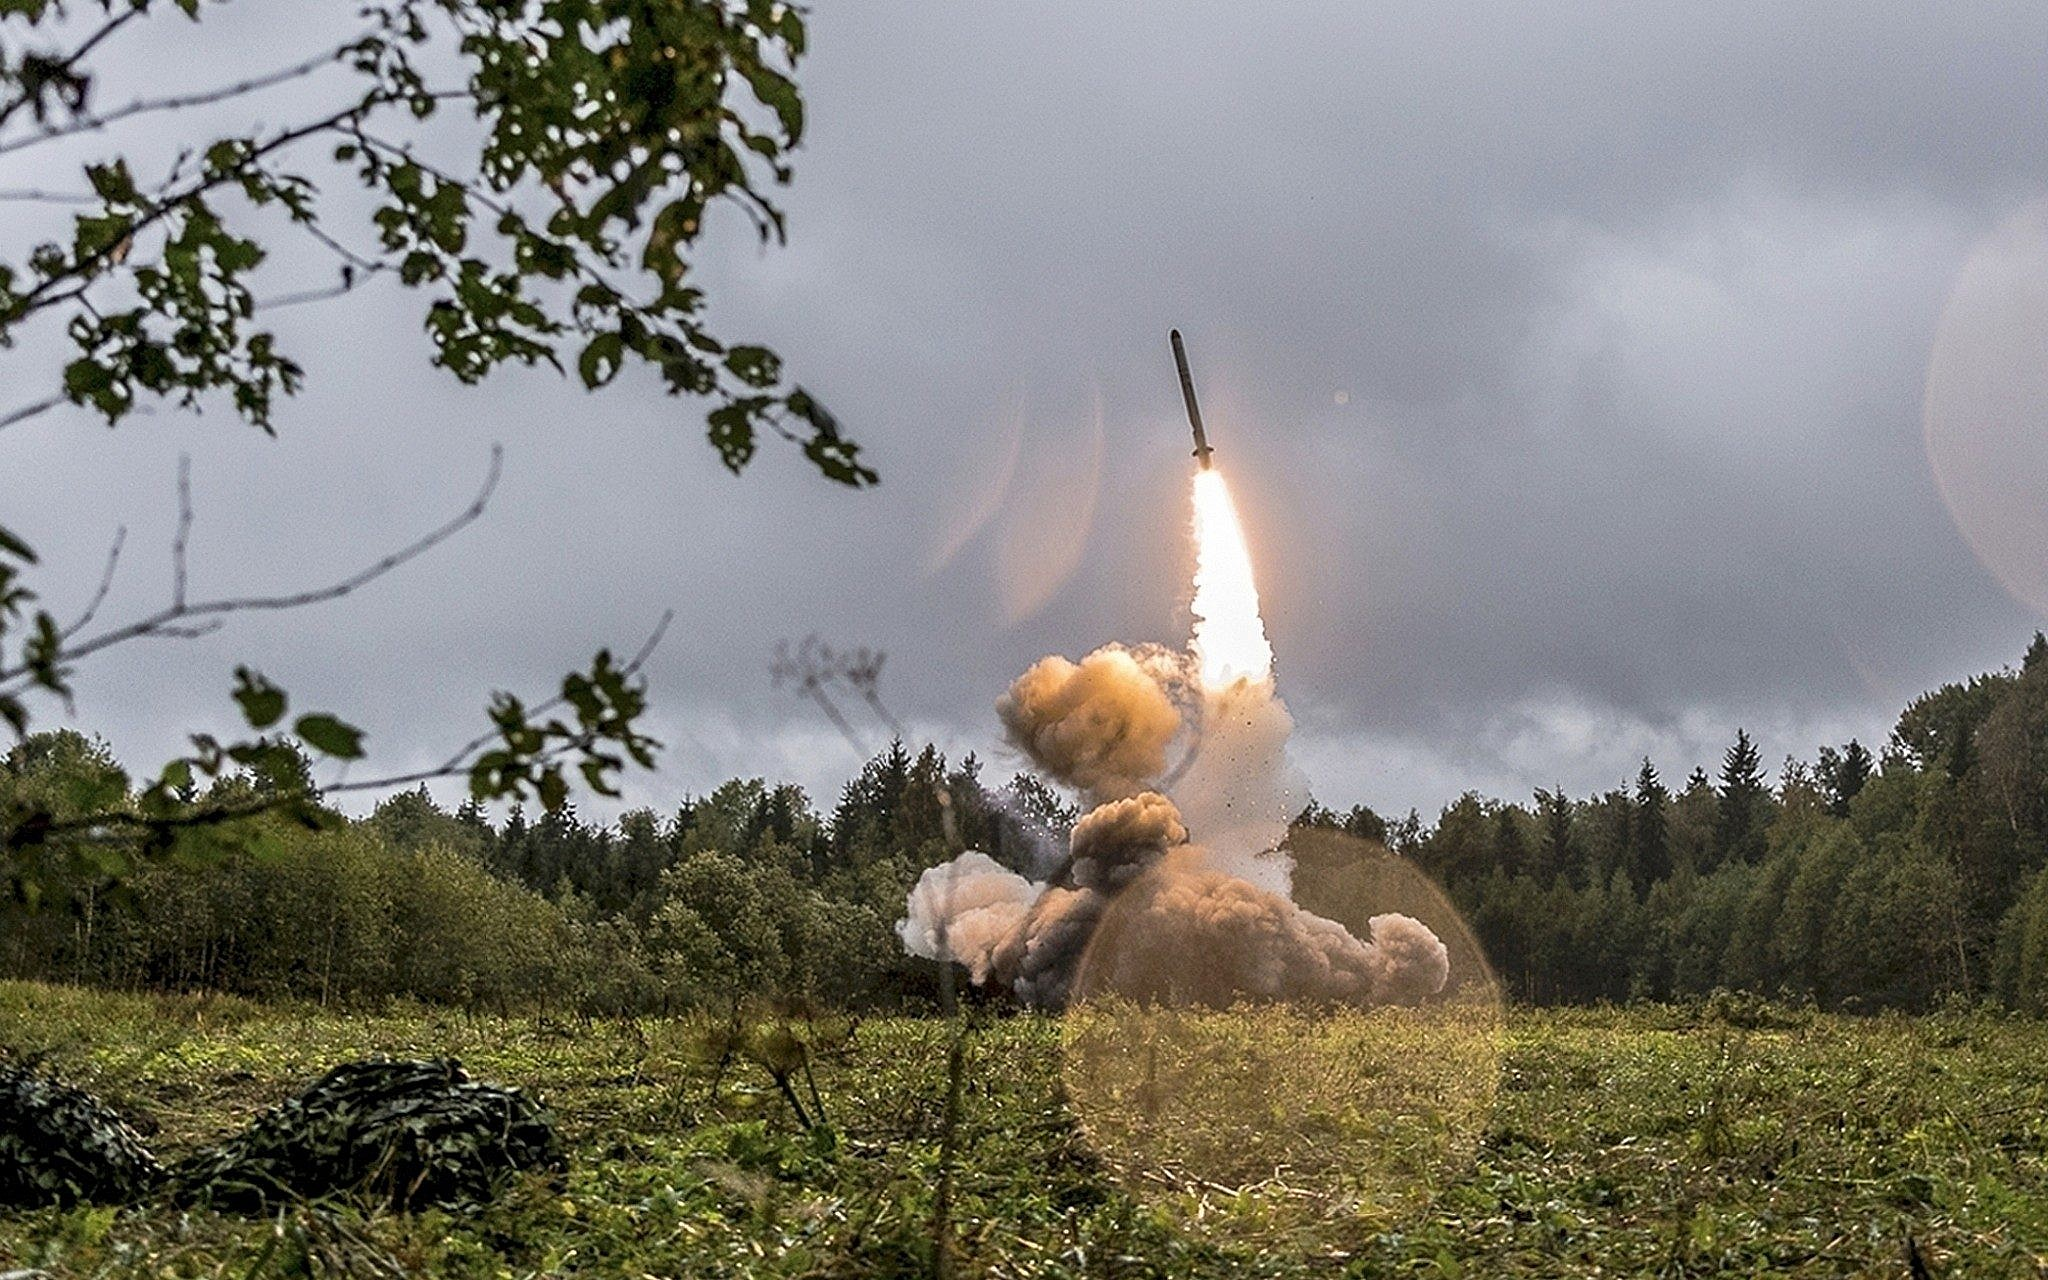 Explosion fuels speculation Russia is testing a nuclear